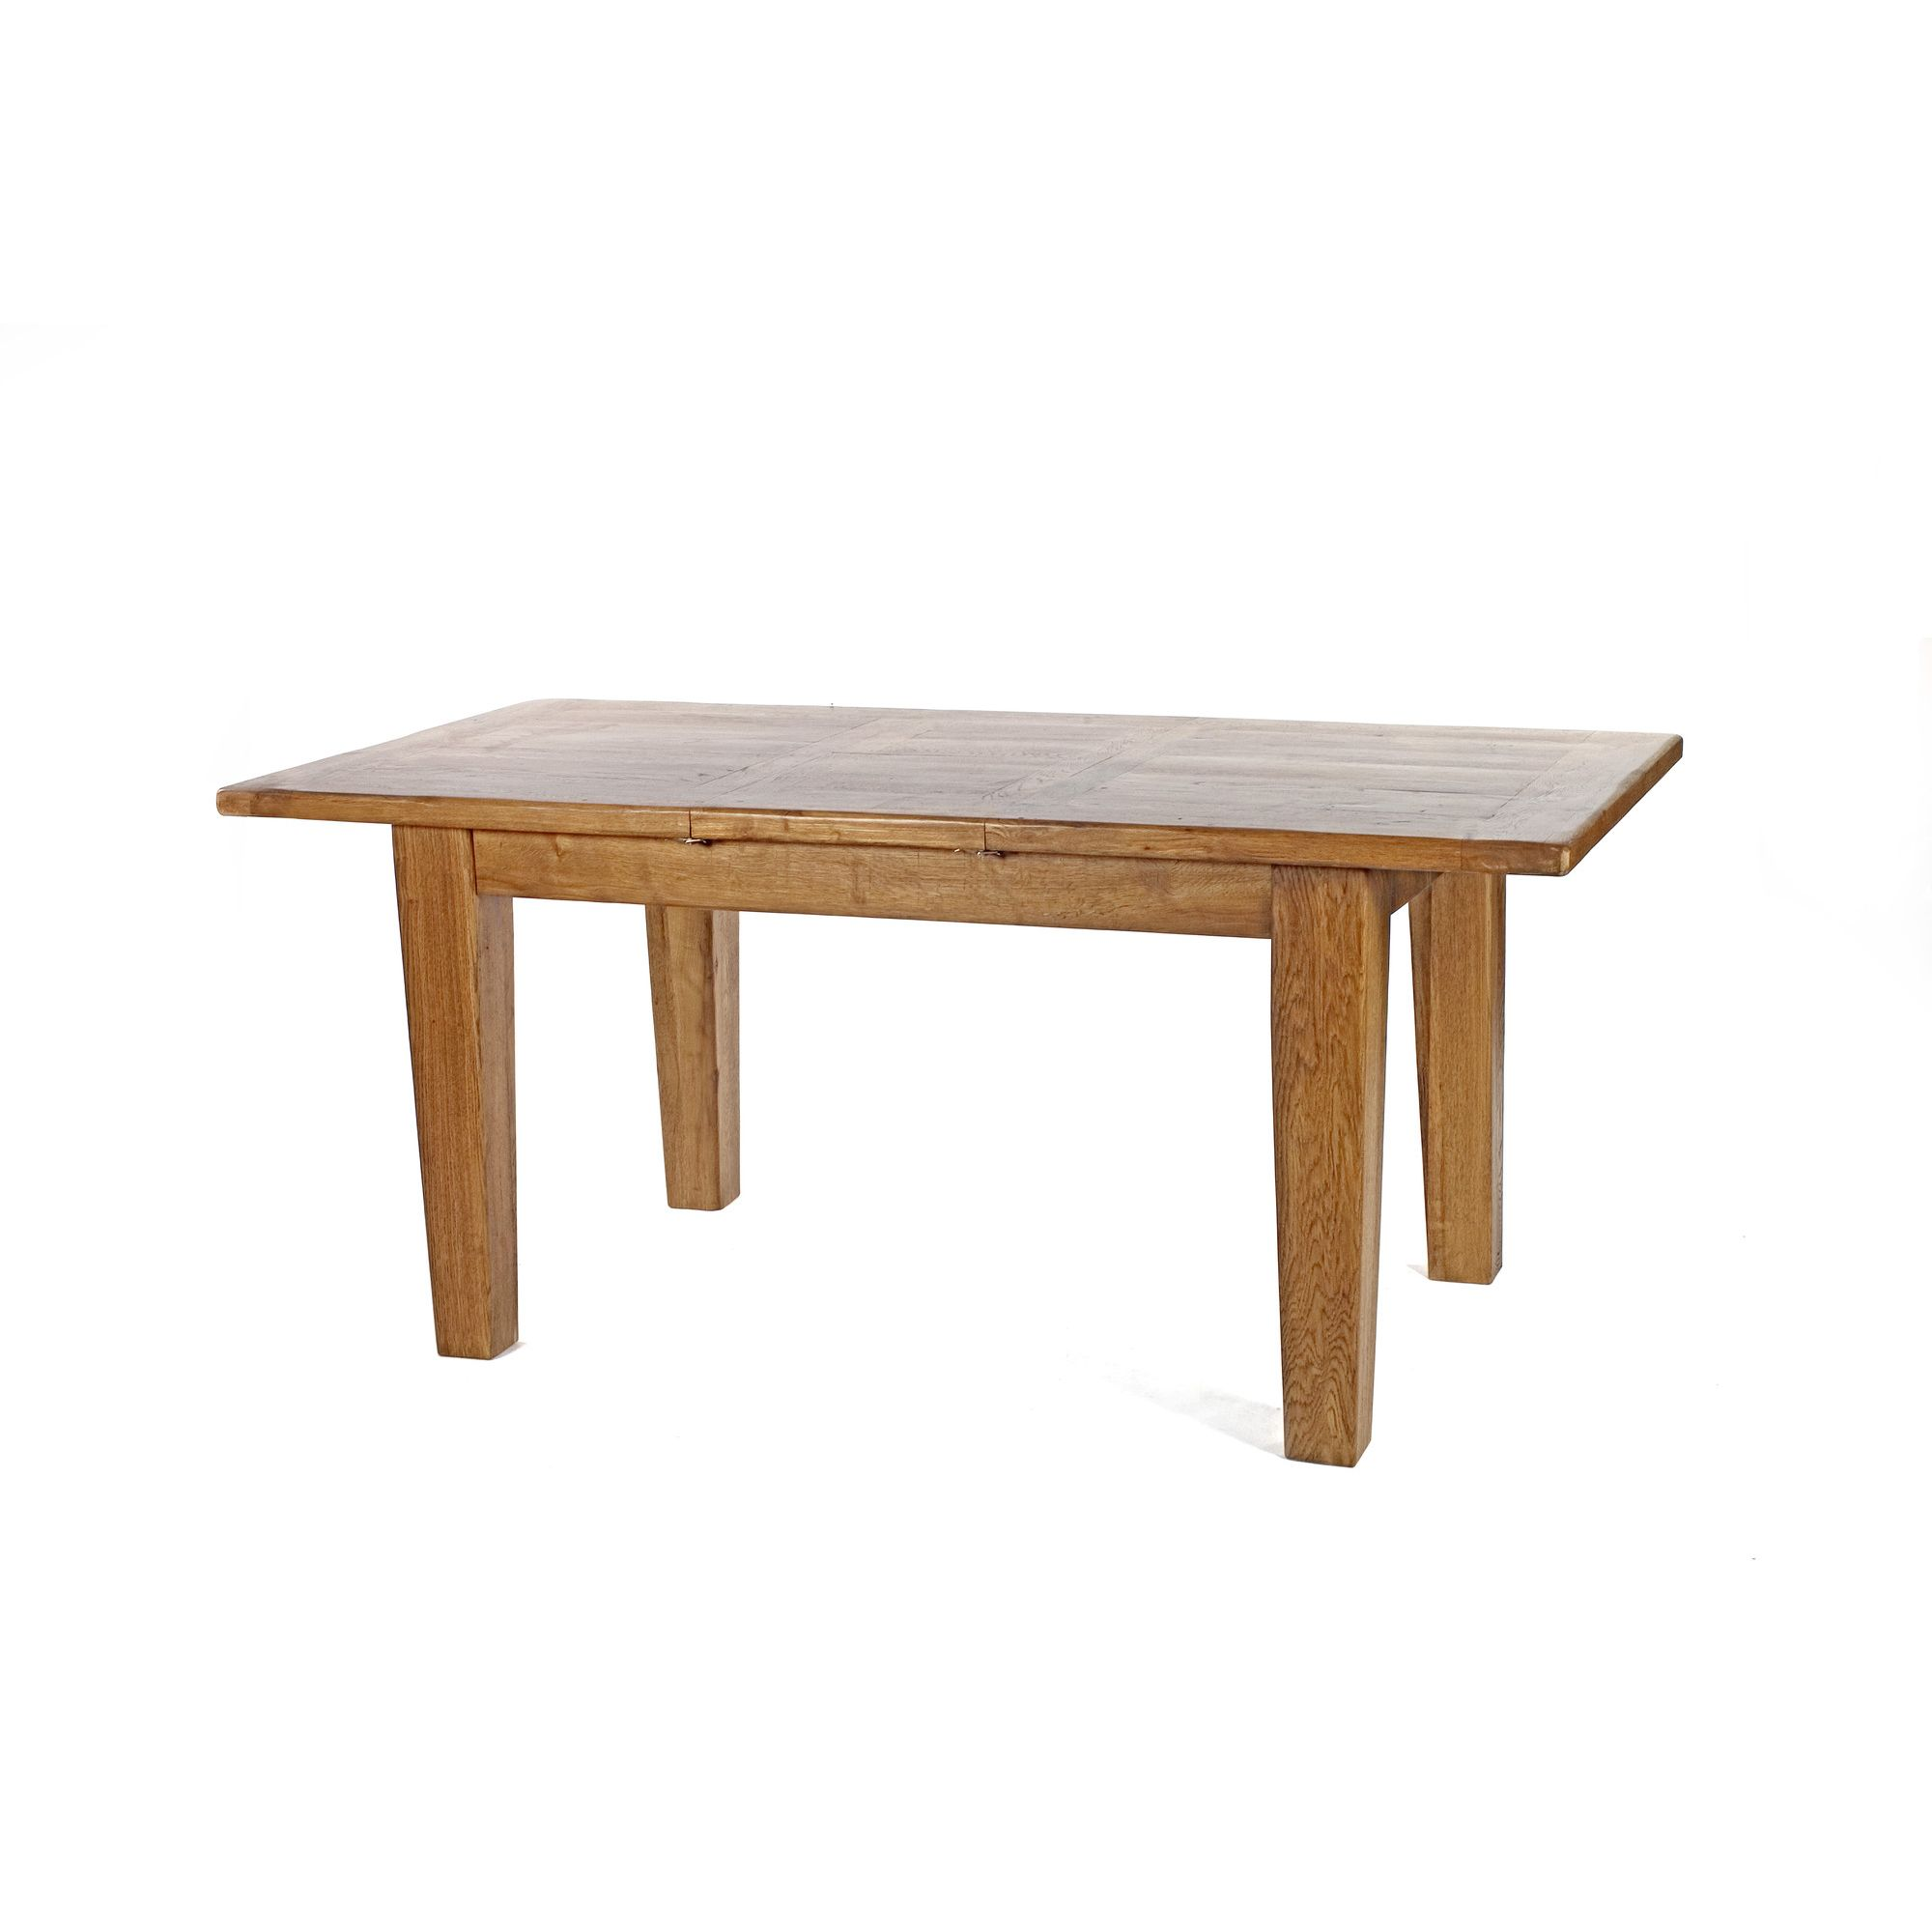 Wiseaction Florence Extension Solid Oak Dining Table - 230cm x 100cm